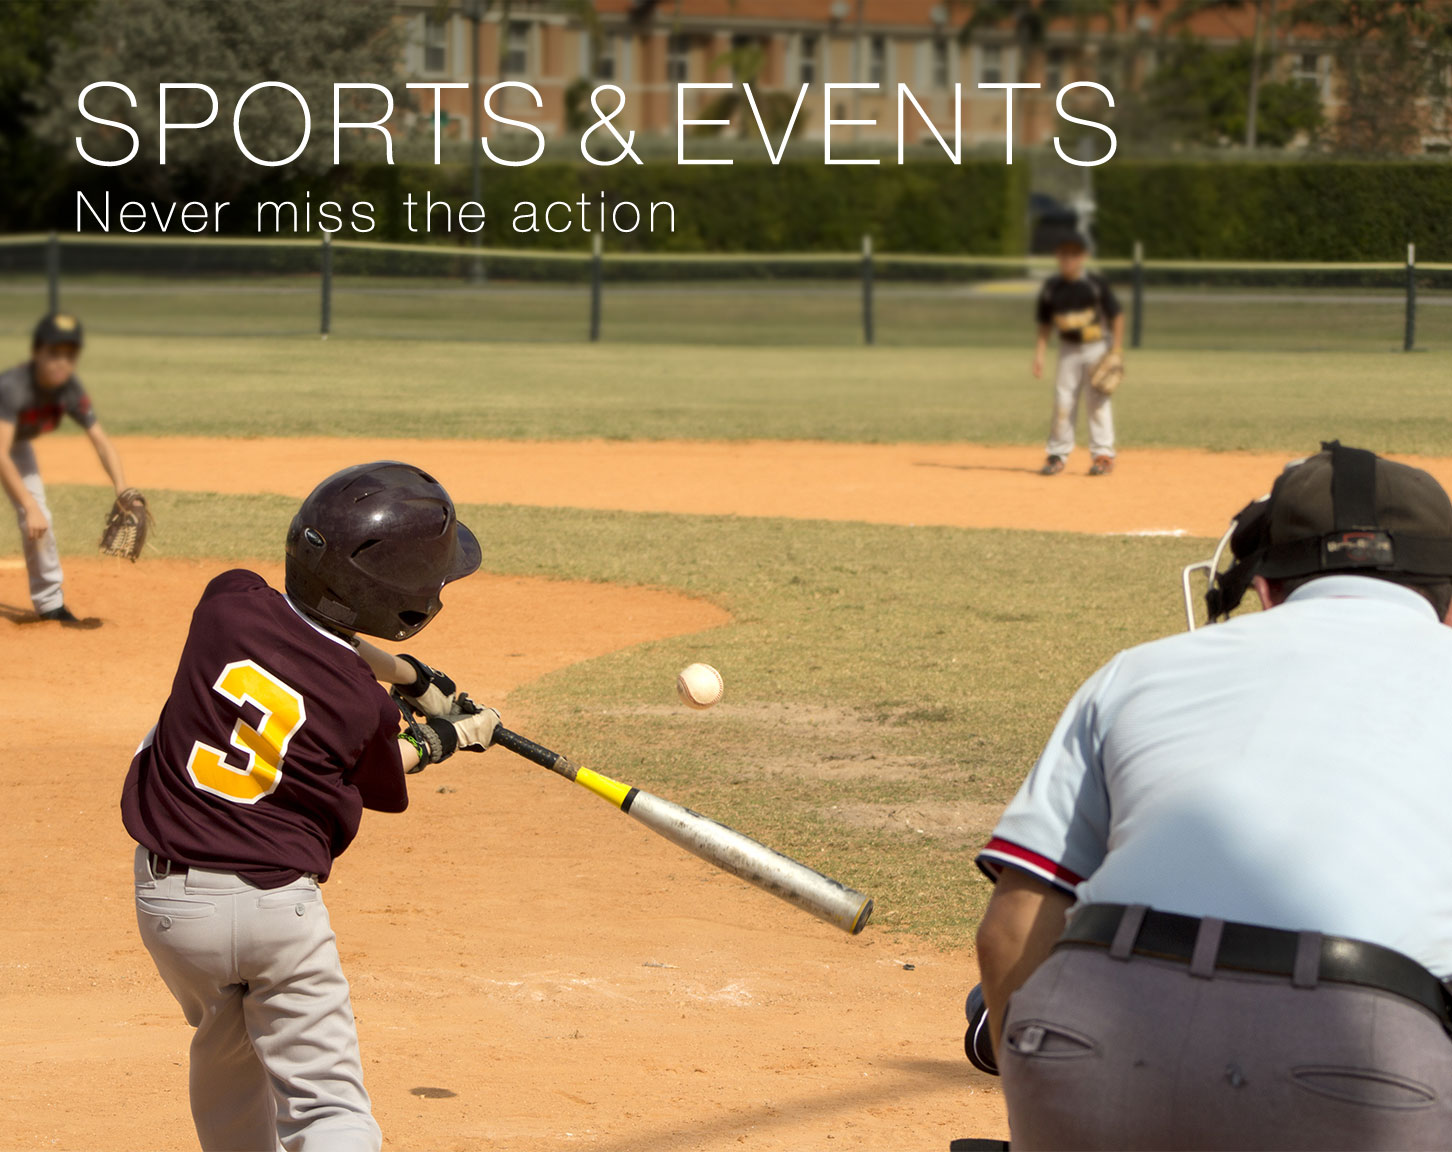 Sports and Events Photography